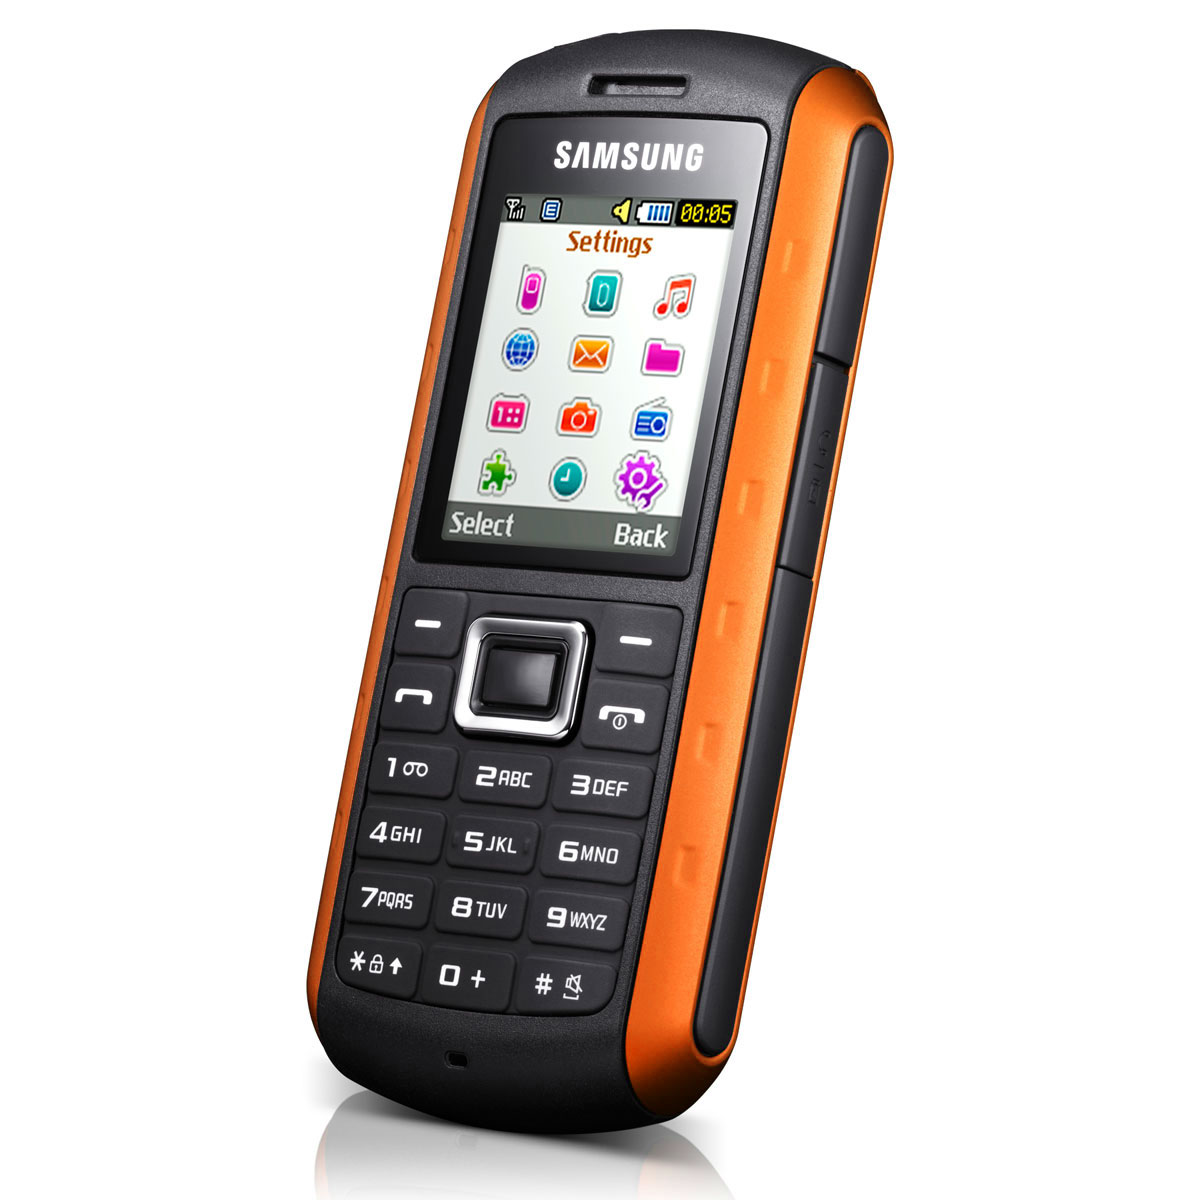 samsung solid gt b2100i noir orange mobile smartphone samsung sur ldlc. Black Bedroom Furniture Sets. Home Design Ideas